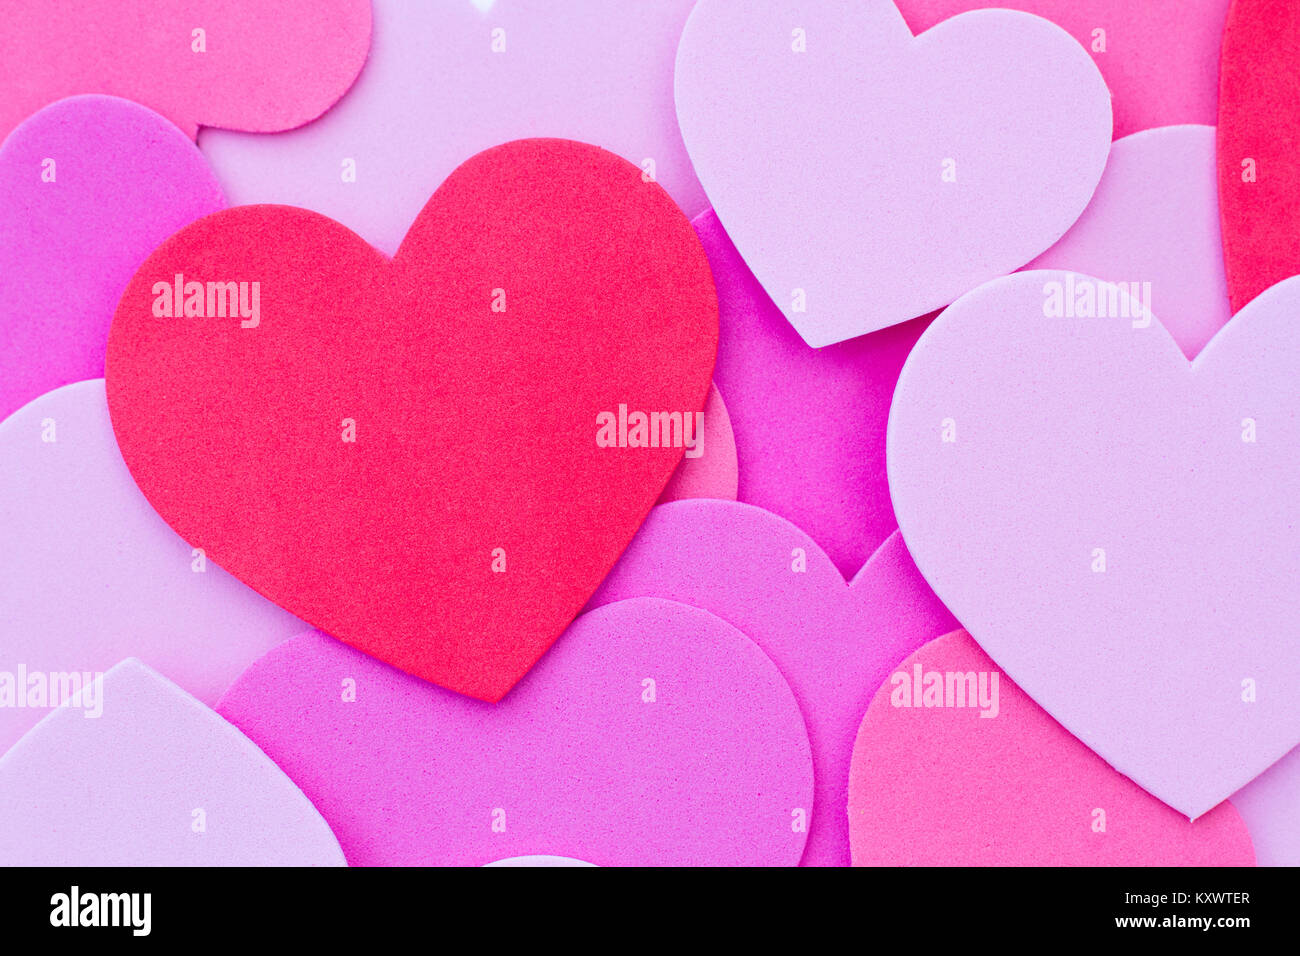 a valentine's day background of red and pink love hearts or heart